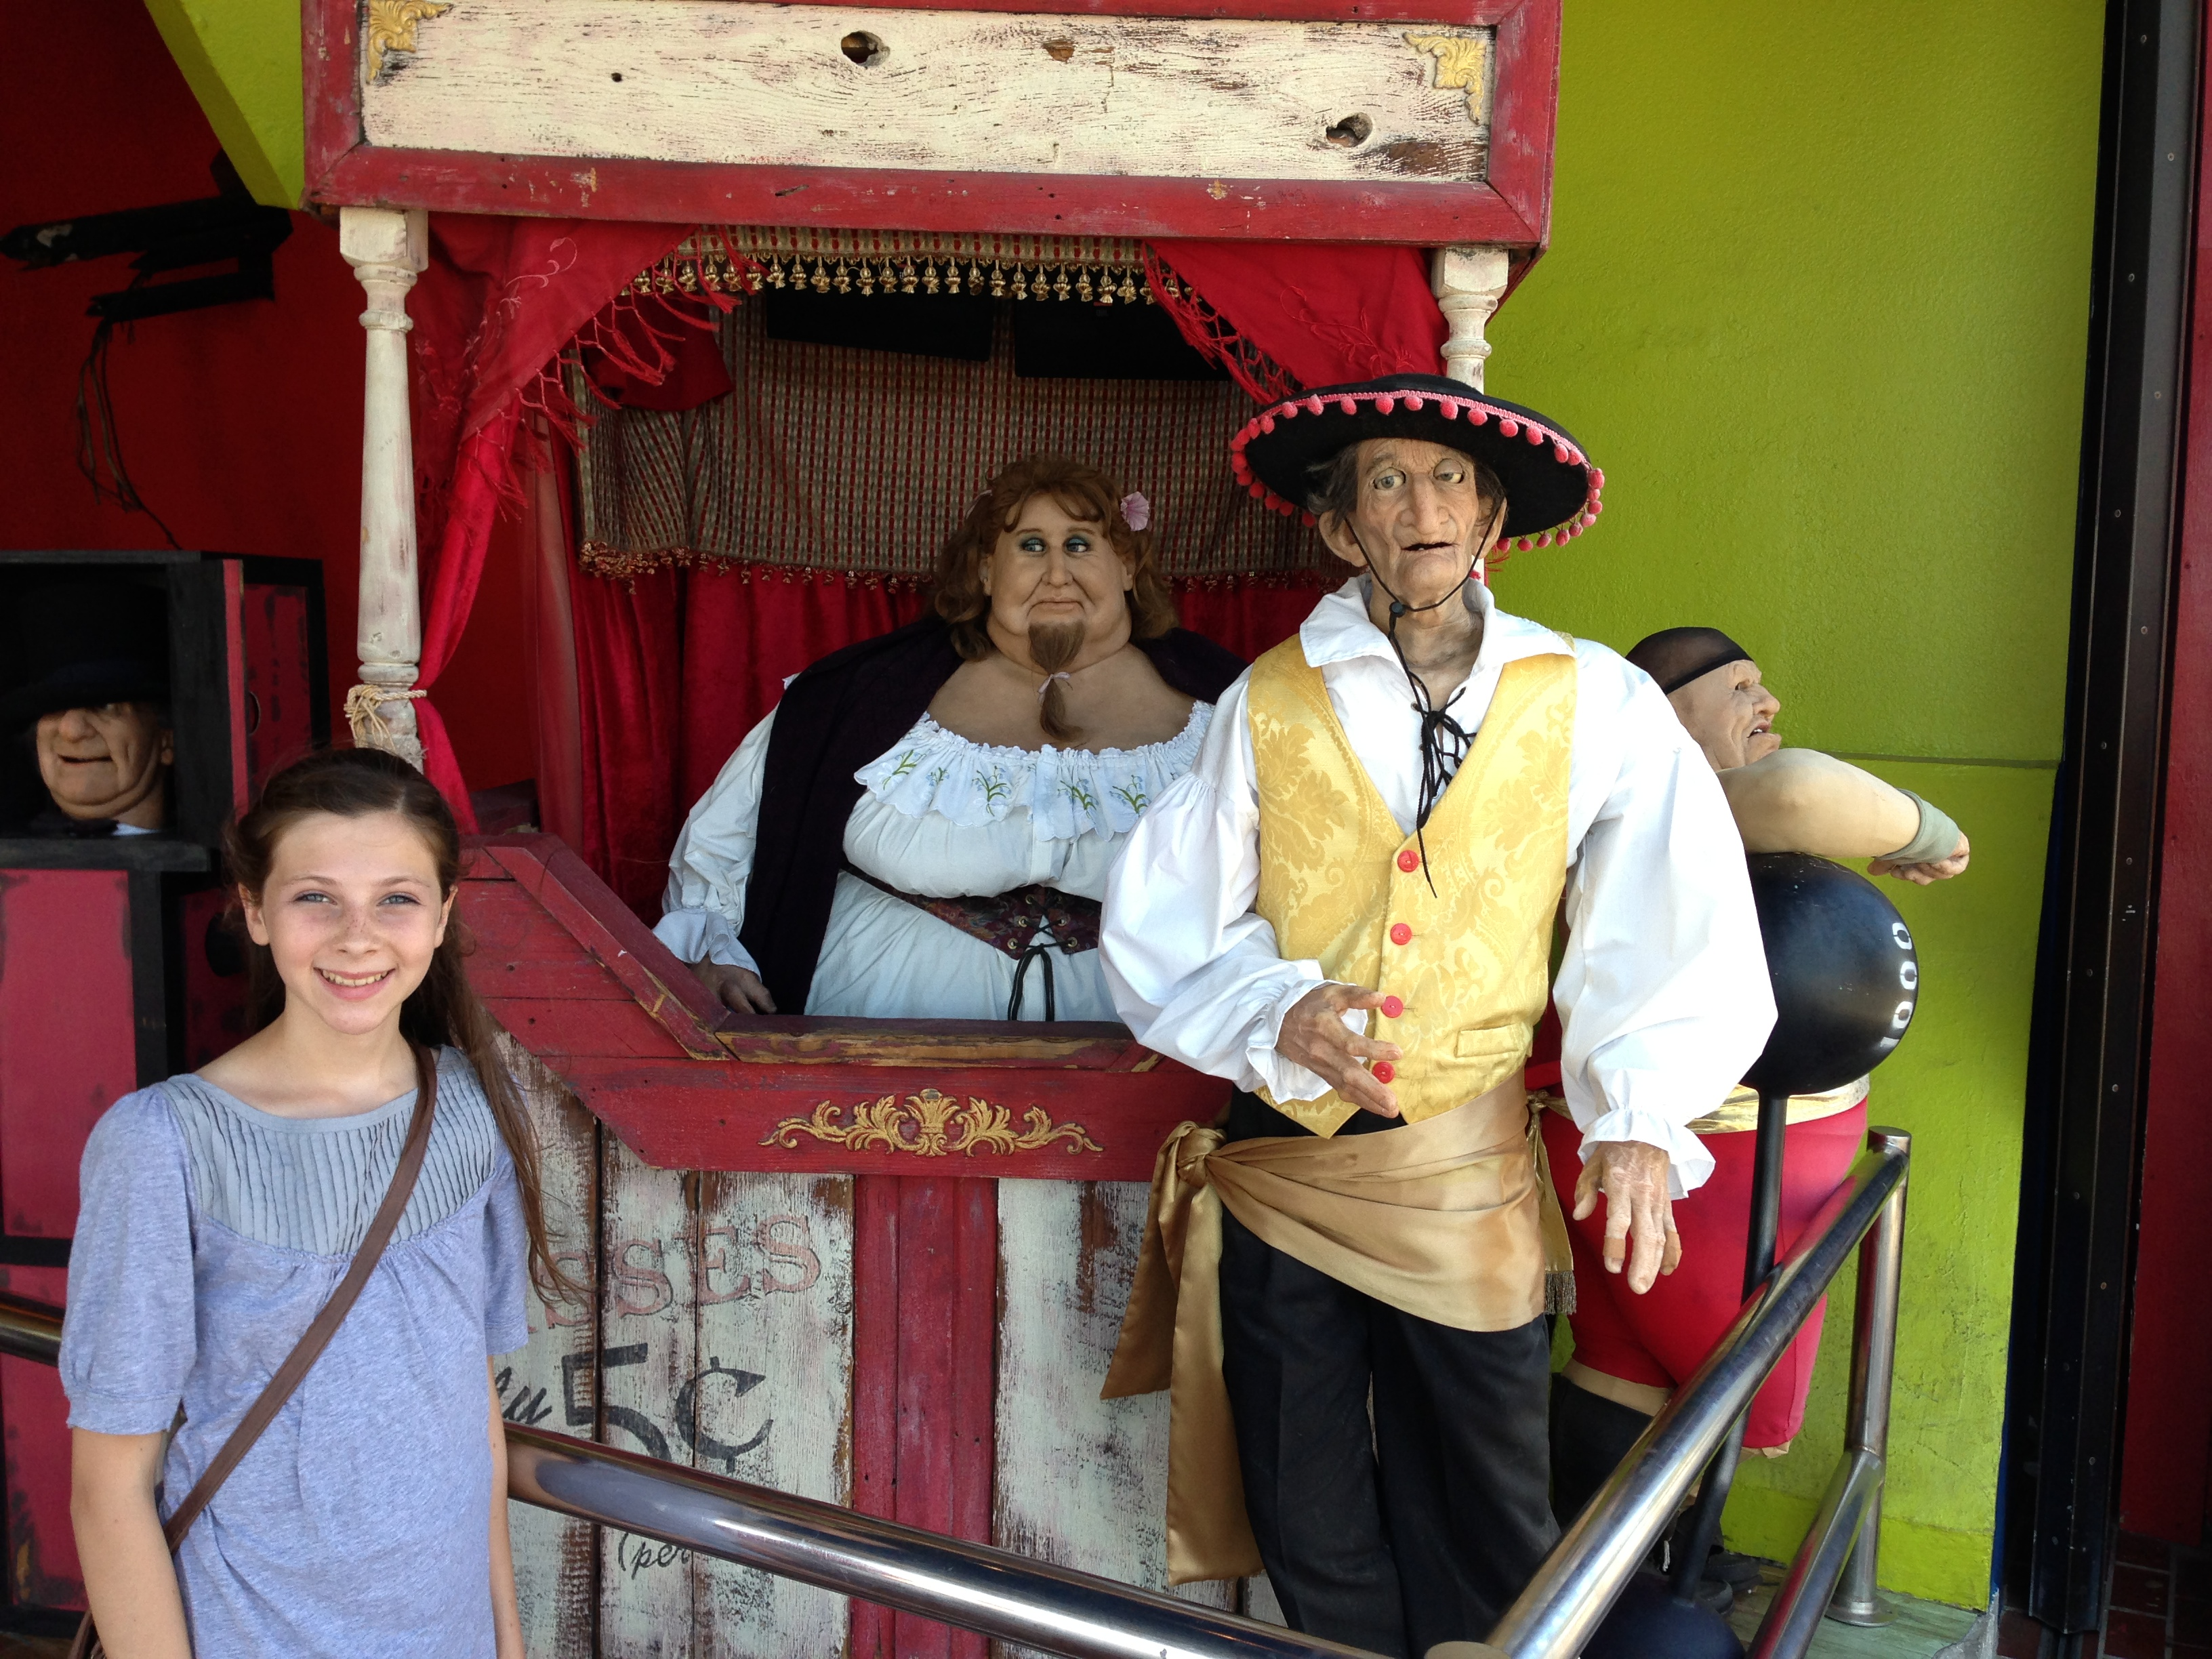 Ripley's Believe it Or Not Myrtle Beach